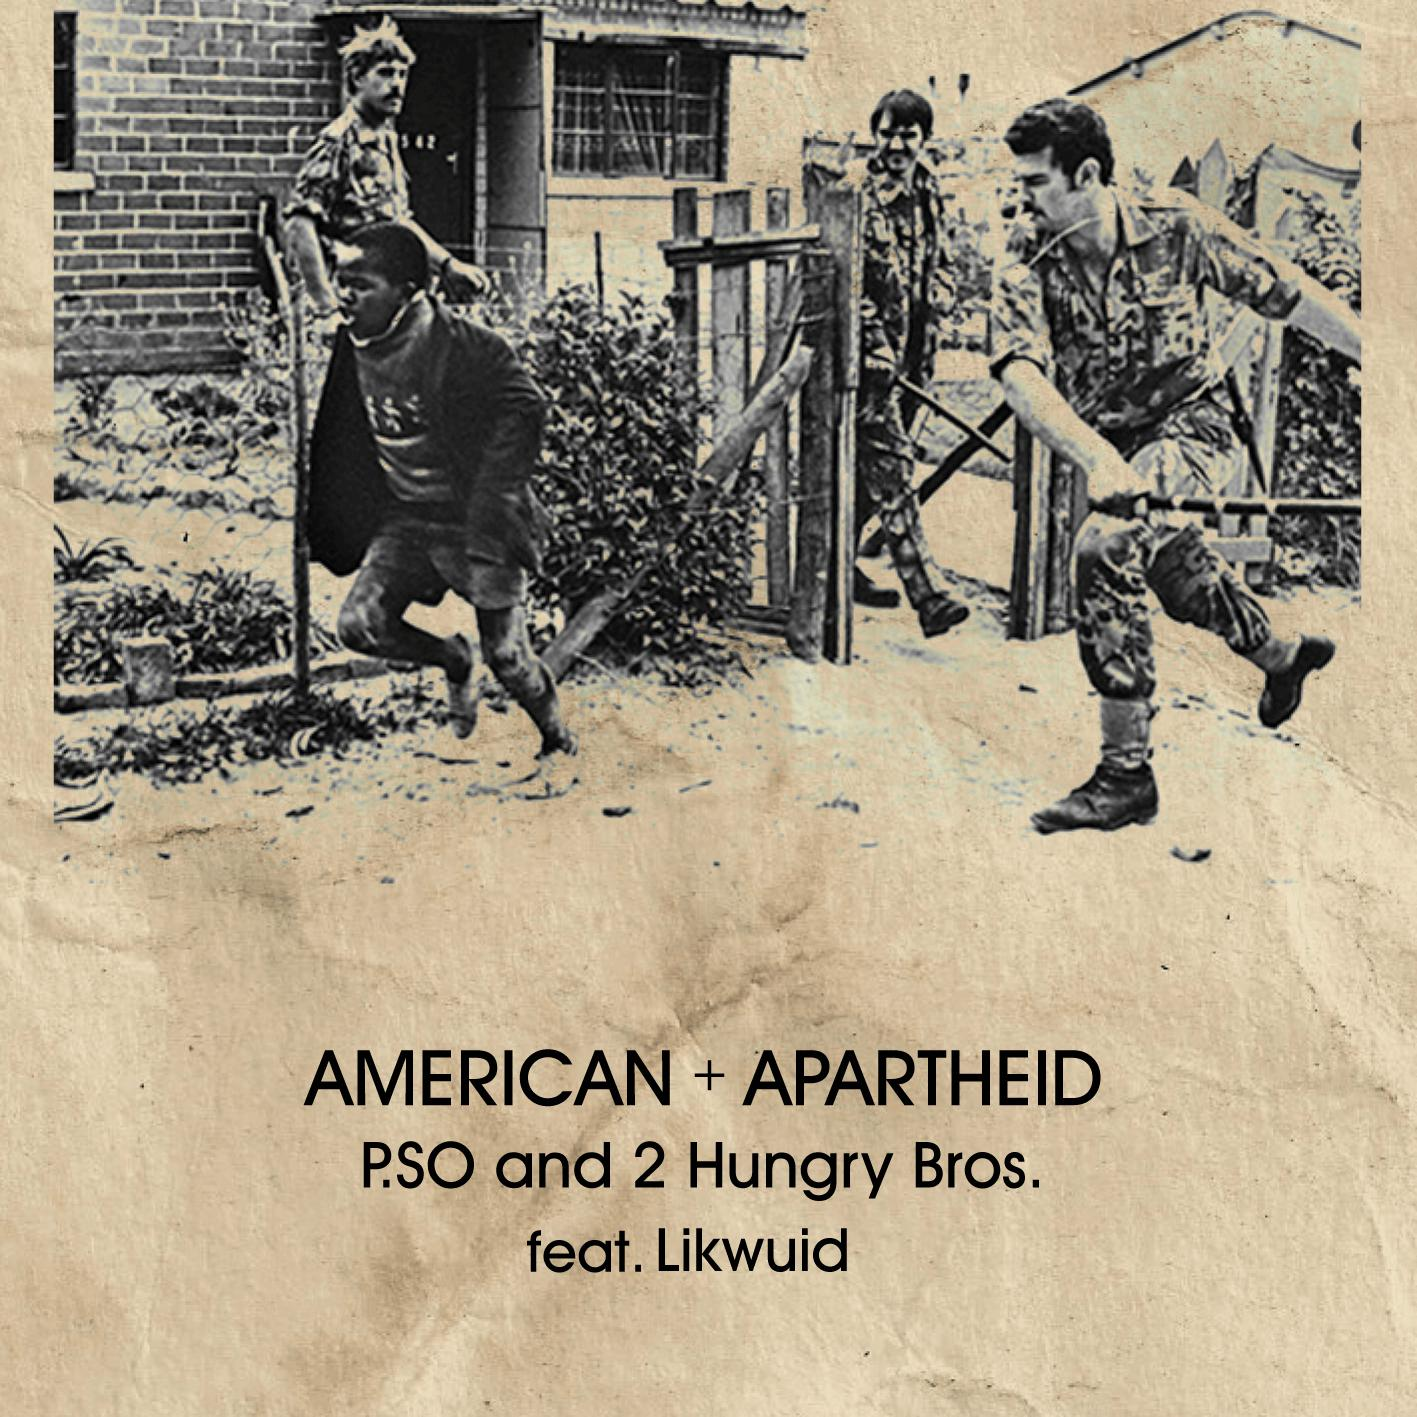 apartheid definition Apartheid definition, (in the republic of south africa) a rigid former policy of segregating and economically and politically oppressing the nonwhite population see.